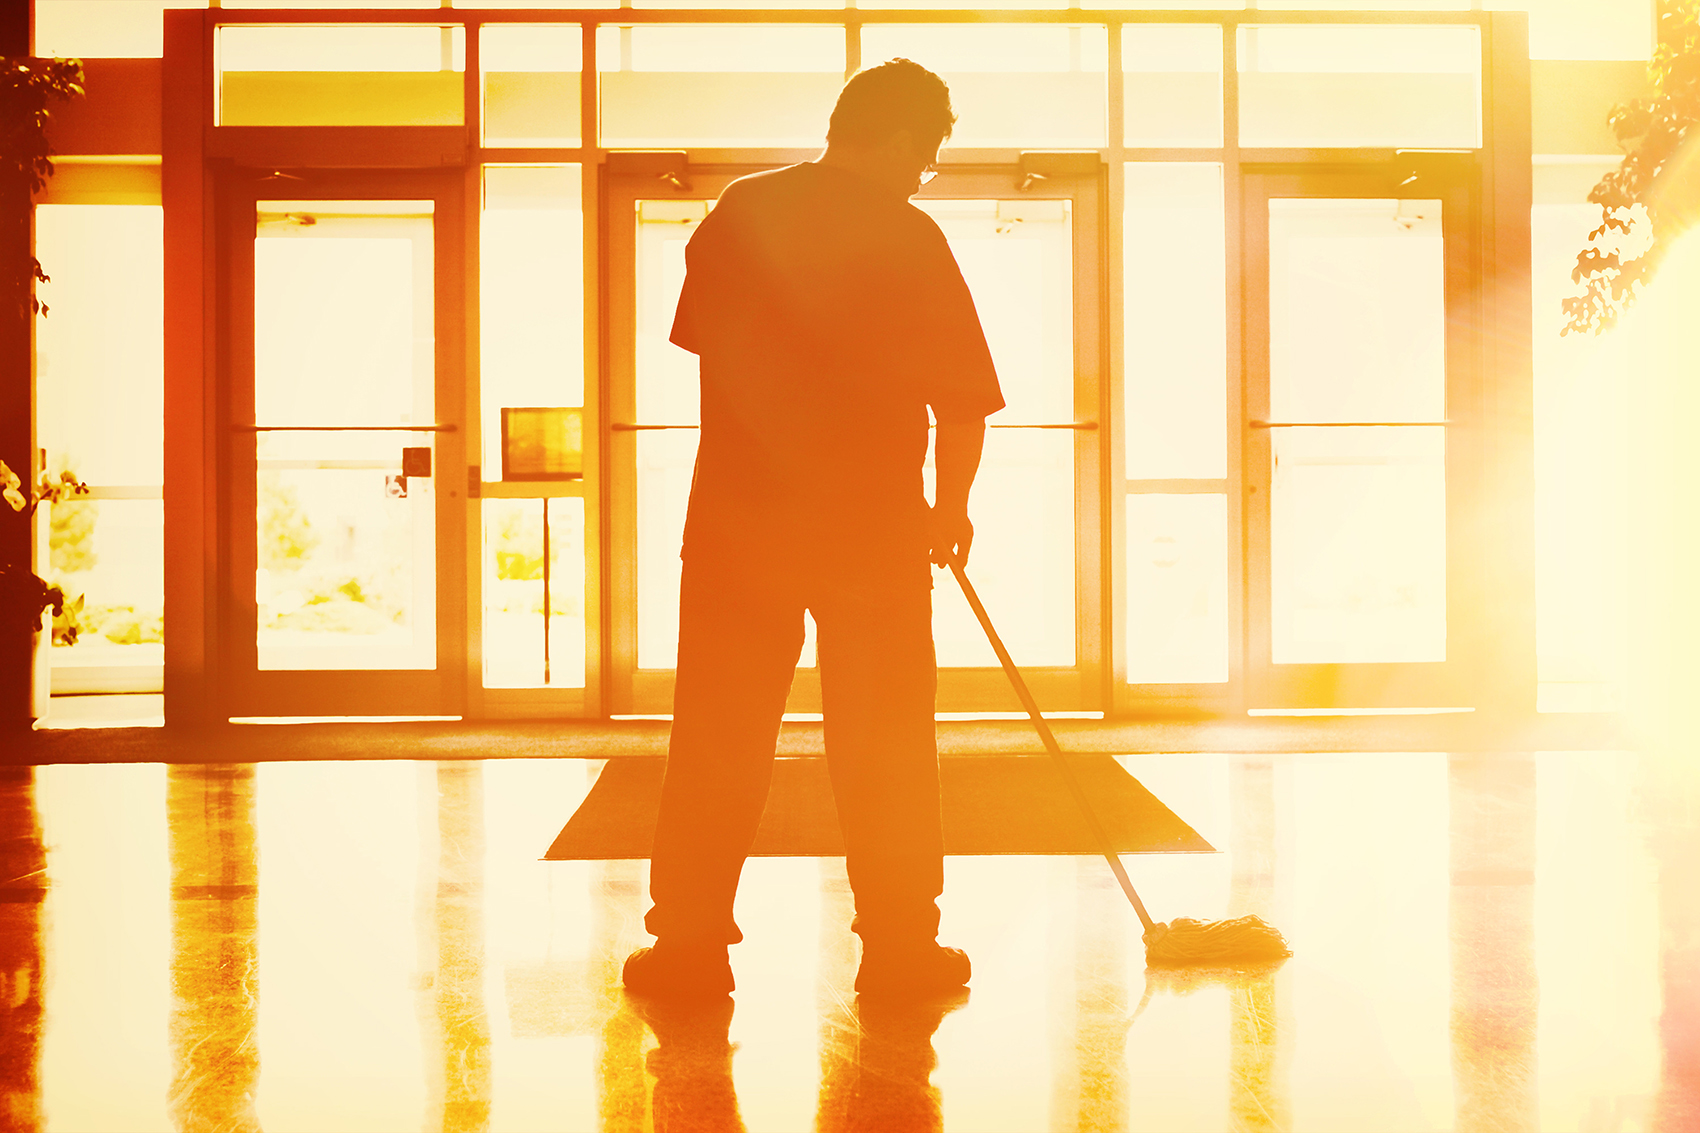 Decca Janitorial Services serving GTA 2020